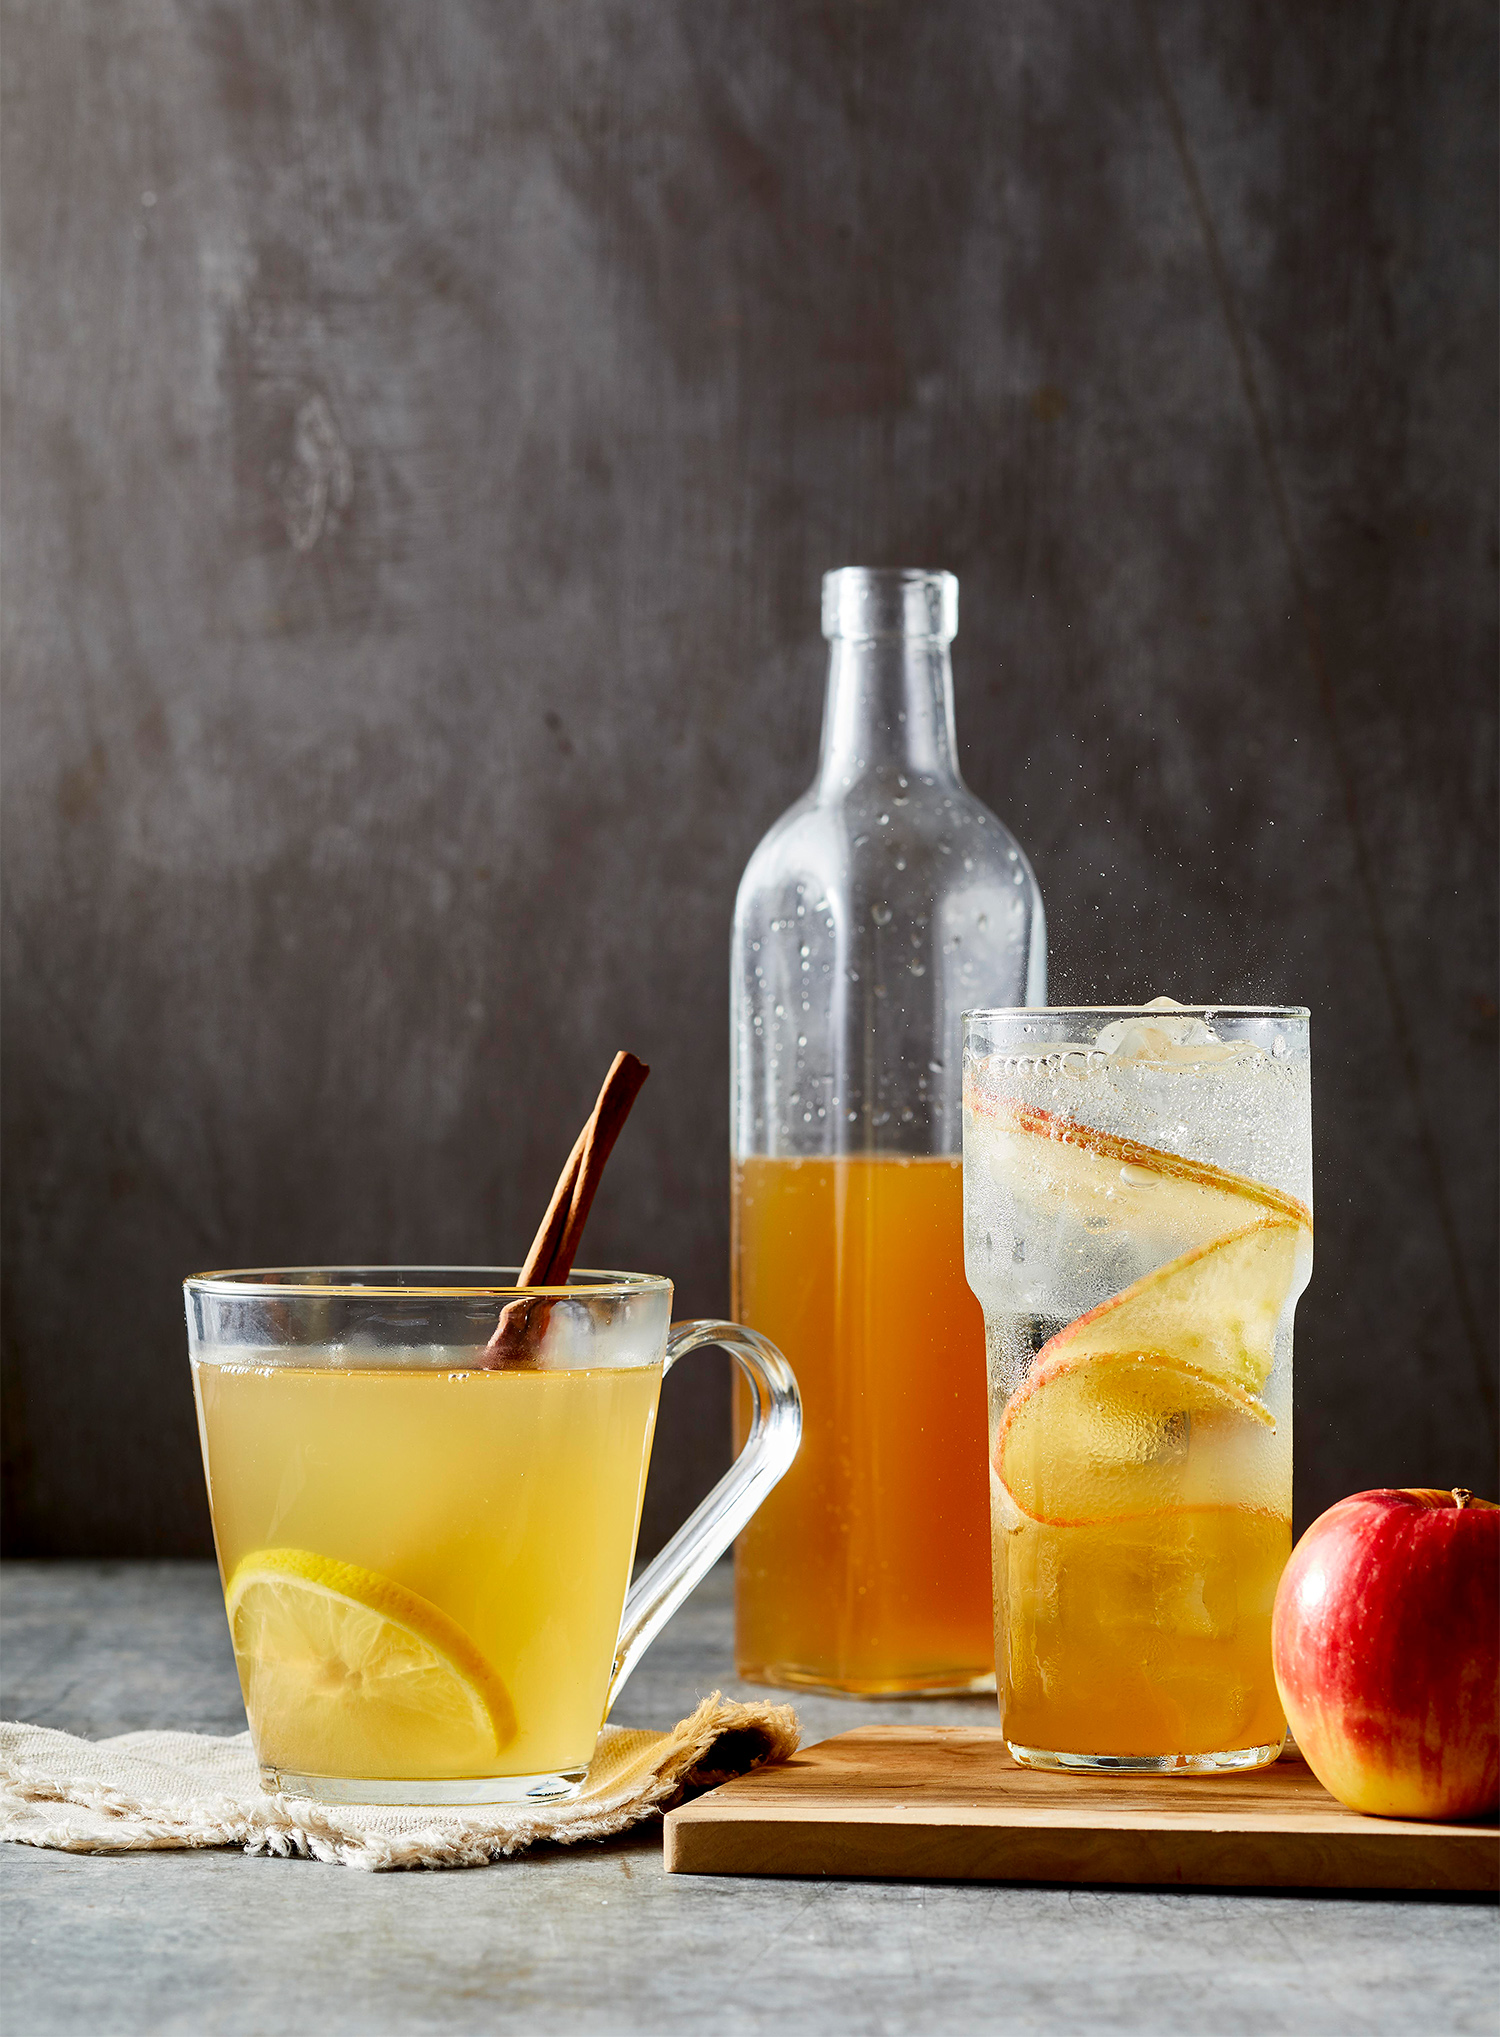 Spiced Apple Shrub